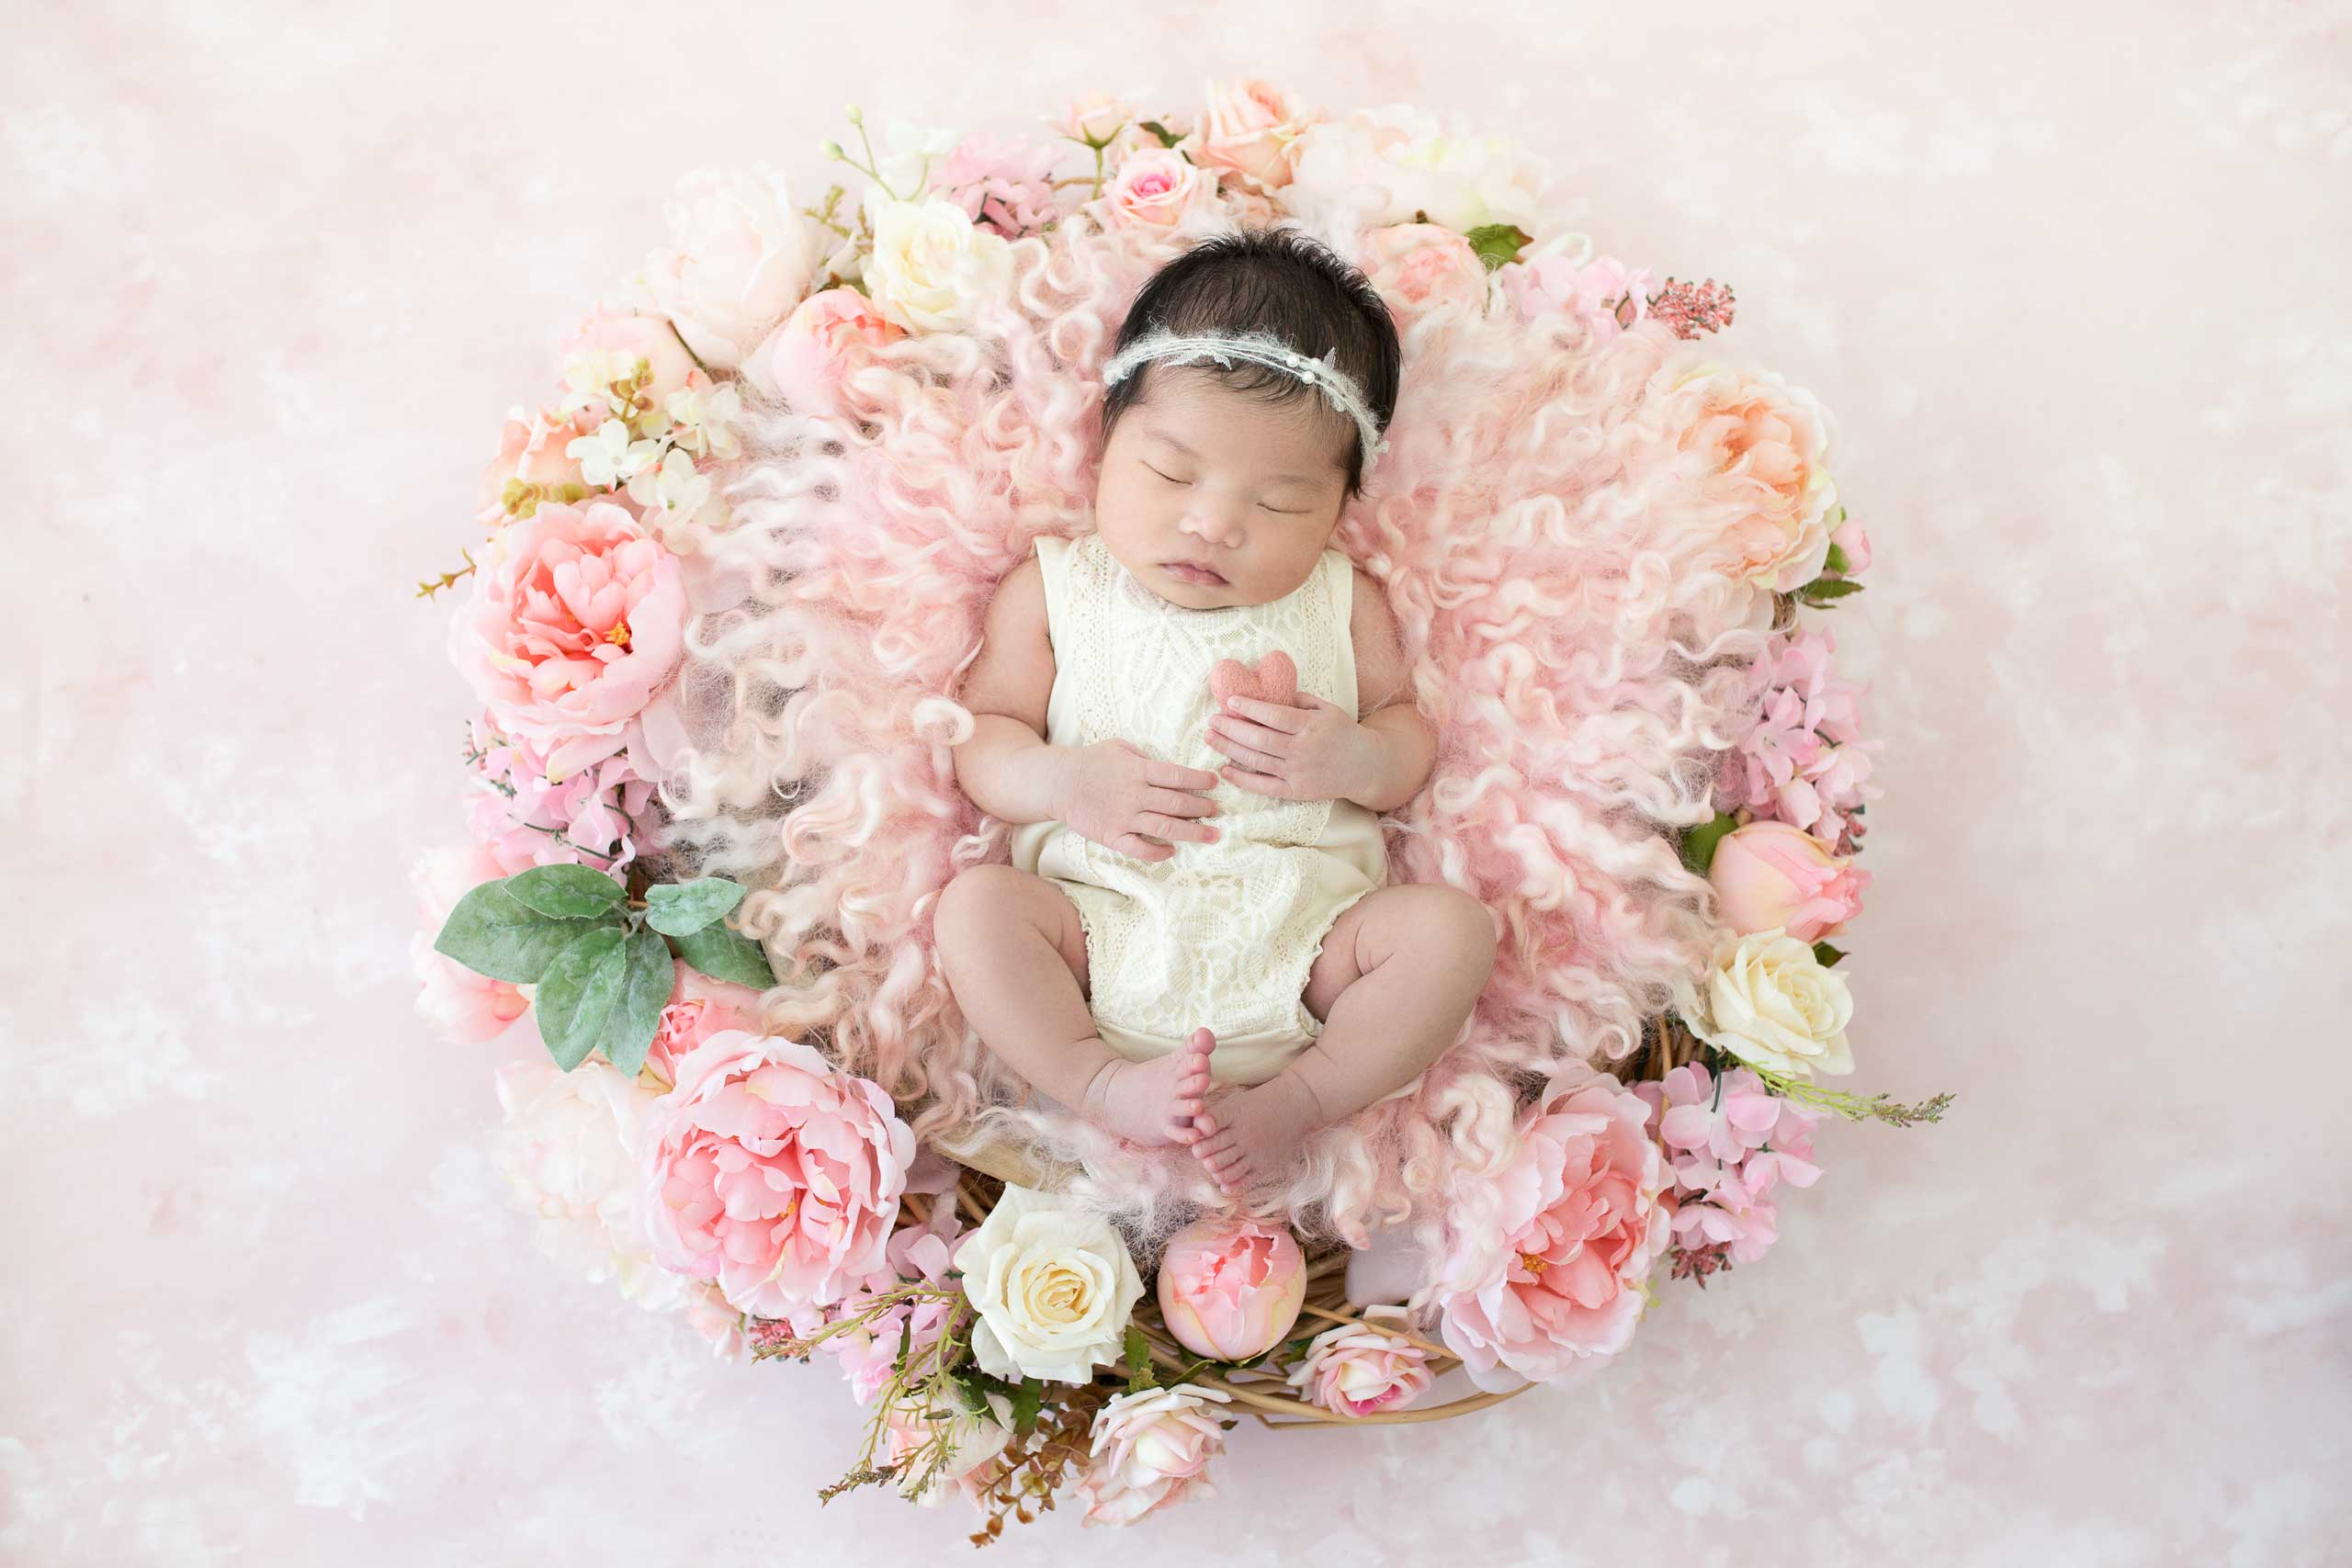 newborn photo session taken by Ramina Magid Photography in Los Angeles 875